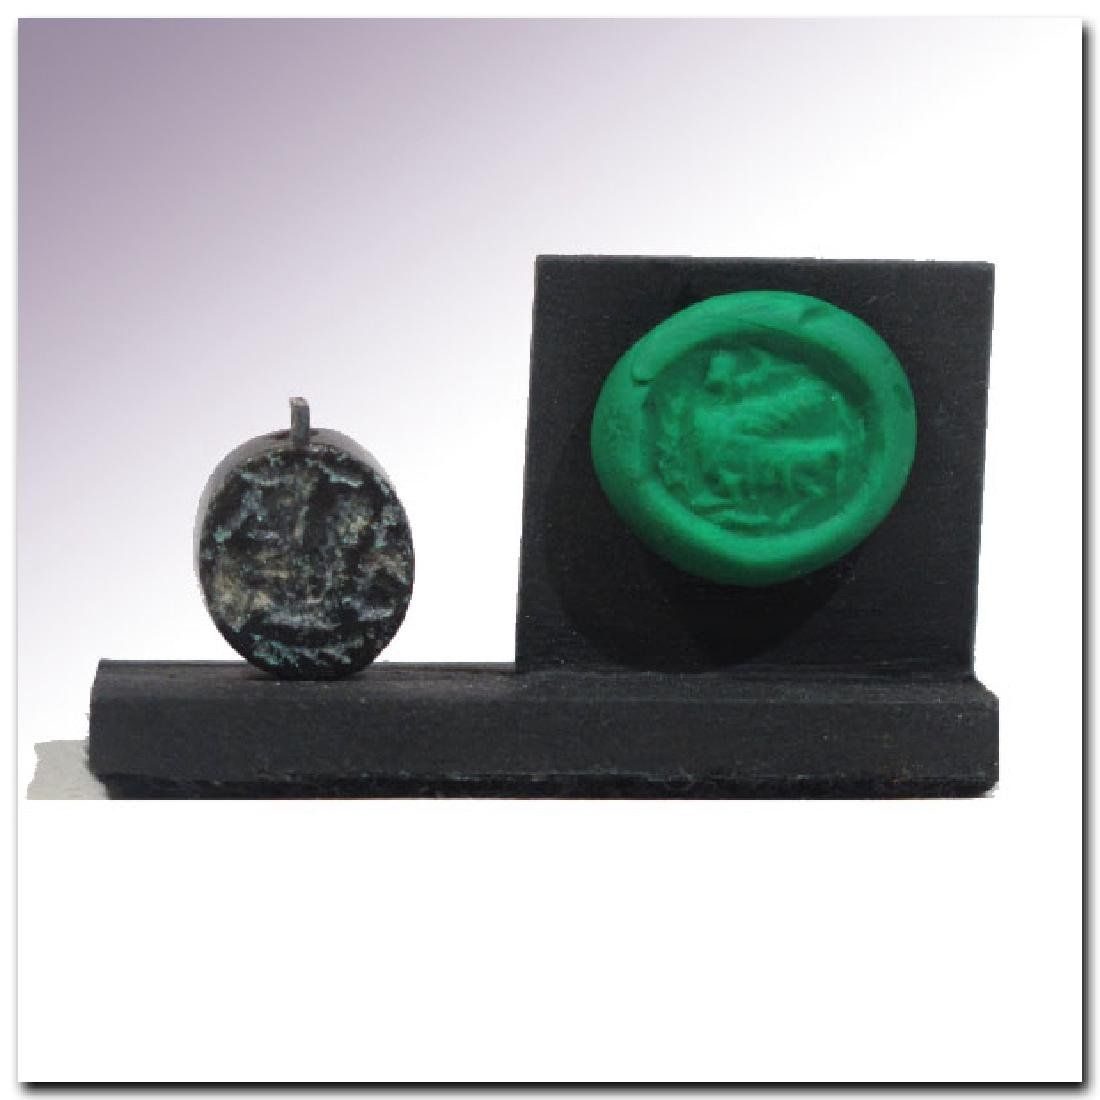 Phoenician Steatite Seal with Sphinx, c. 6th-5th